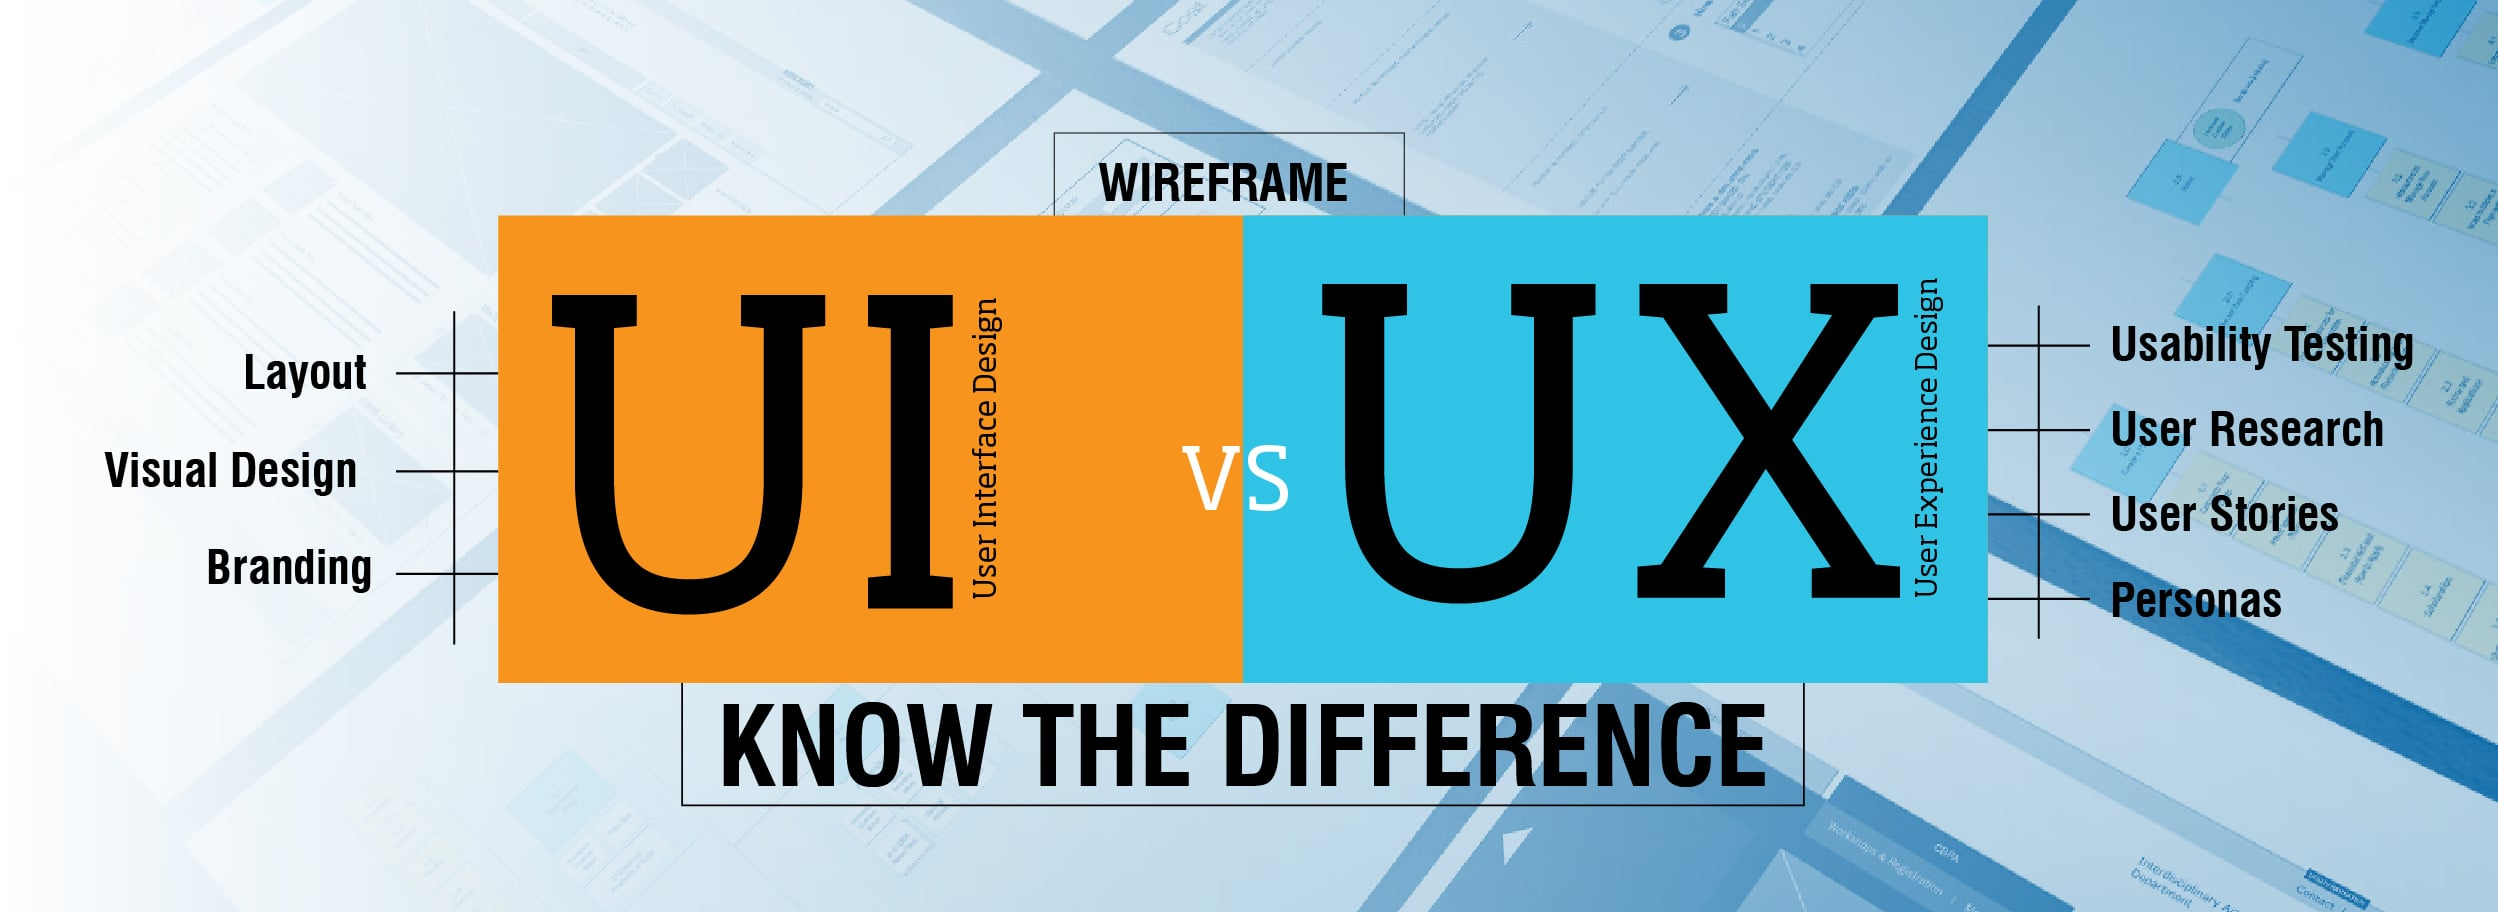 FREE Ultimate Checklist: Everything You Need to Become a UI/UX Designer - ui vs ux